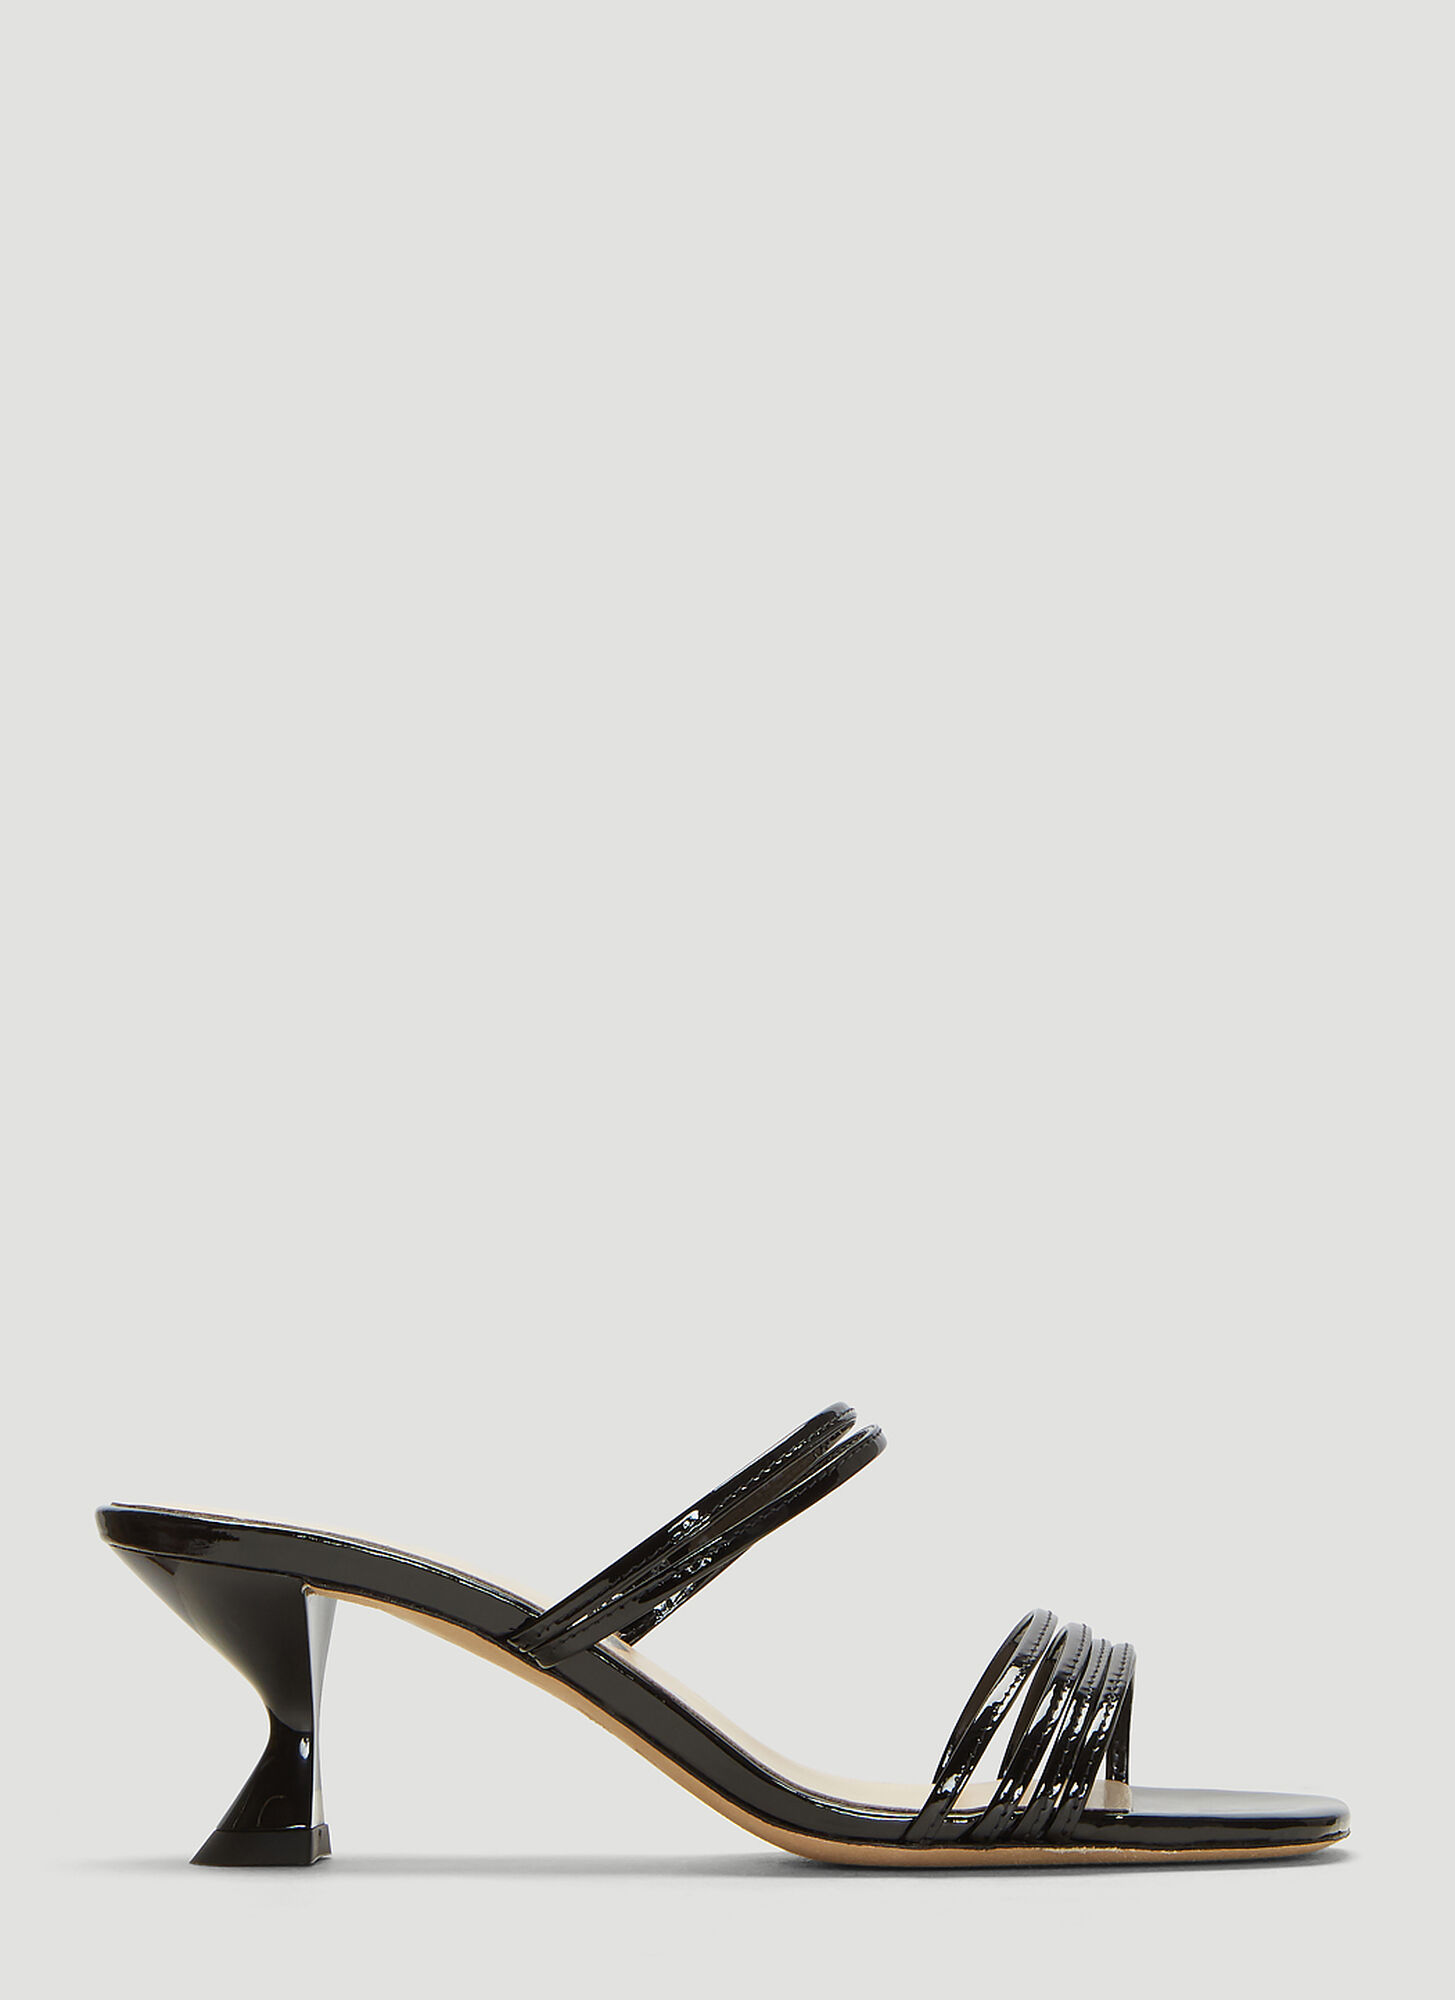 Kalda Simon Sandals in Black